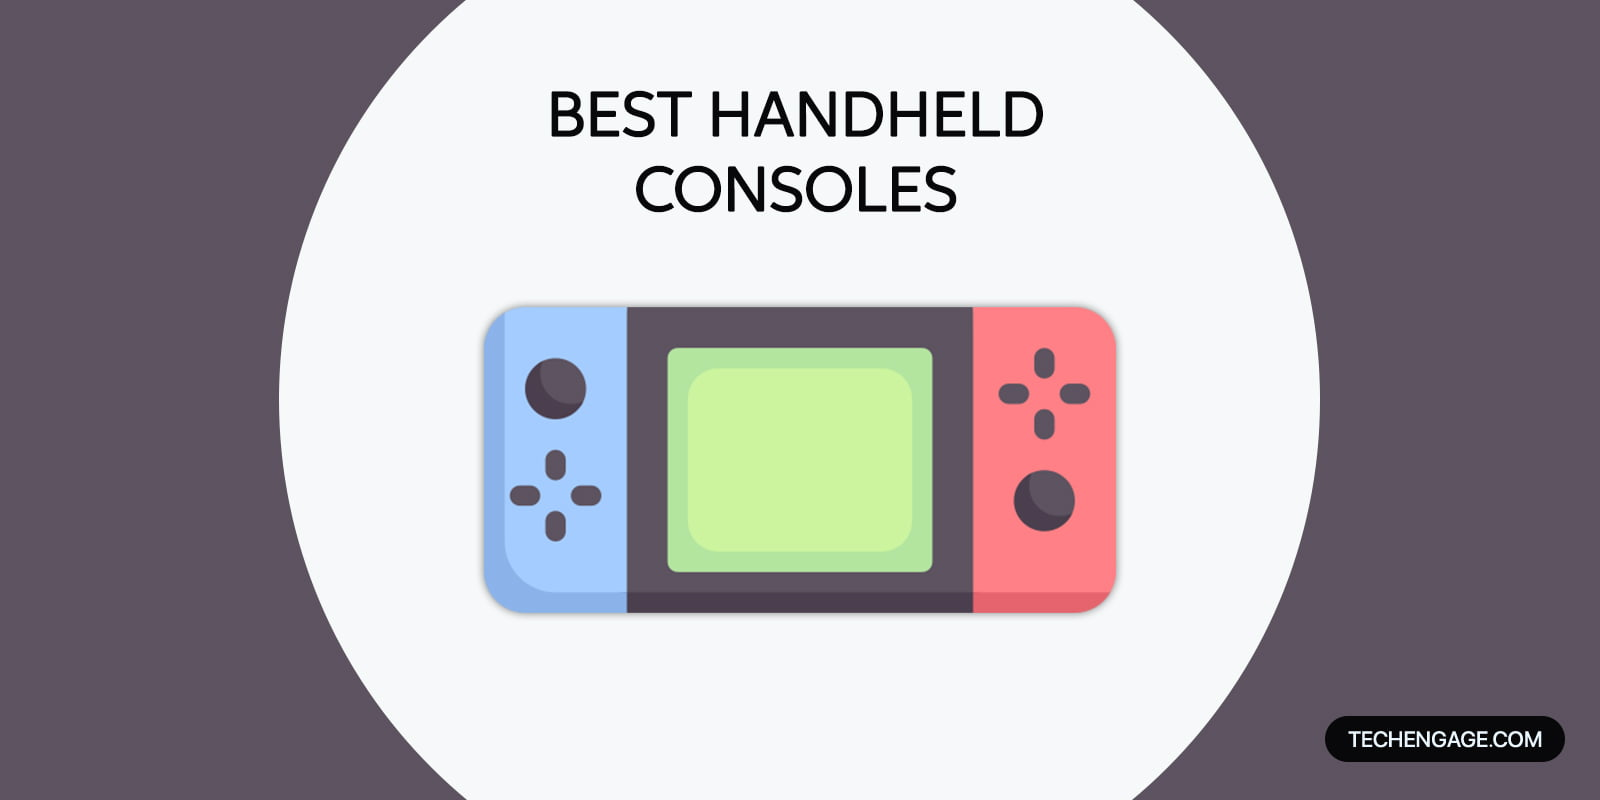 Best handheld video game consoles for 2021